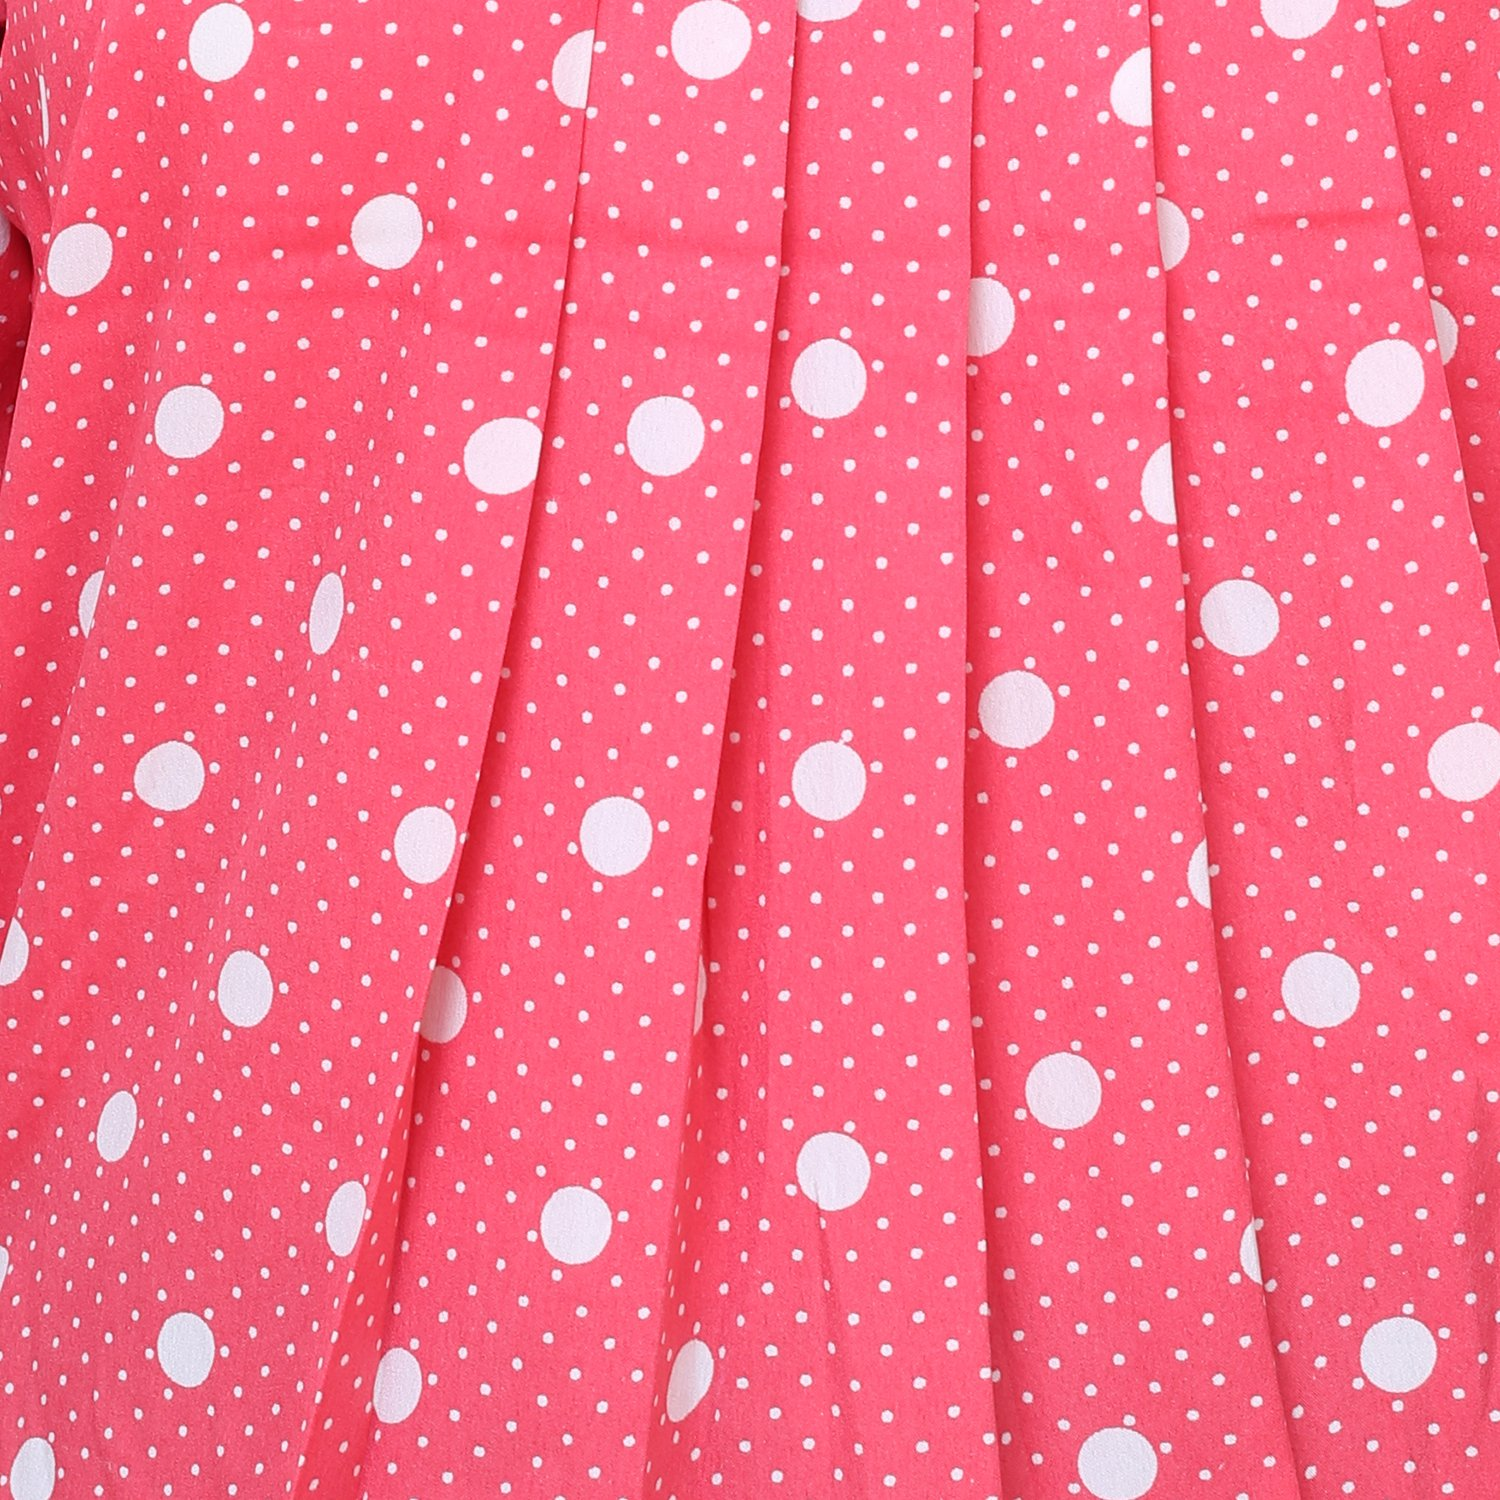 bae78e69f0eba0 Deewa Pink Polka Dots Top (Small)  Amazon.in  Clothing   Accessories